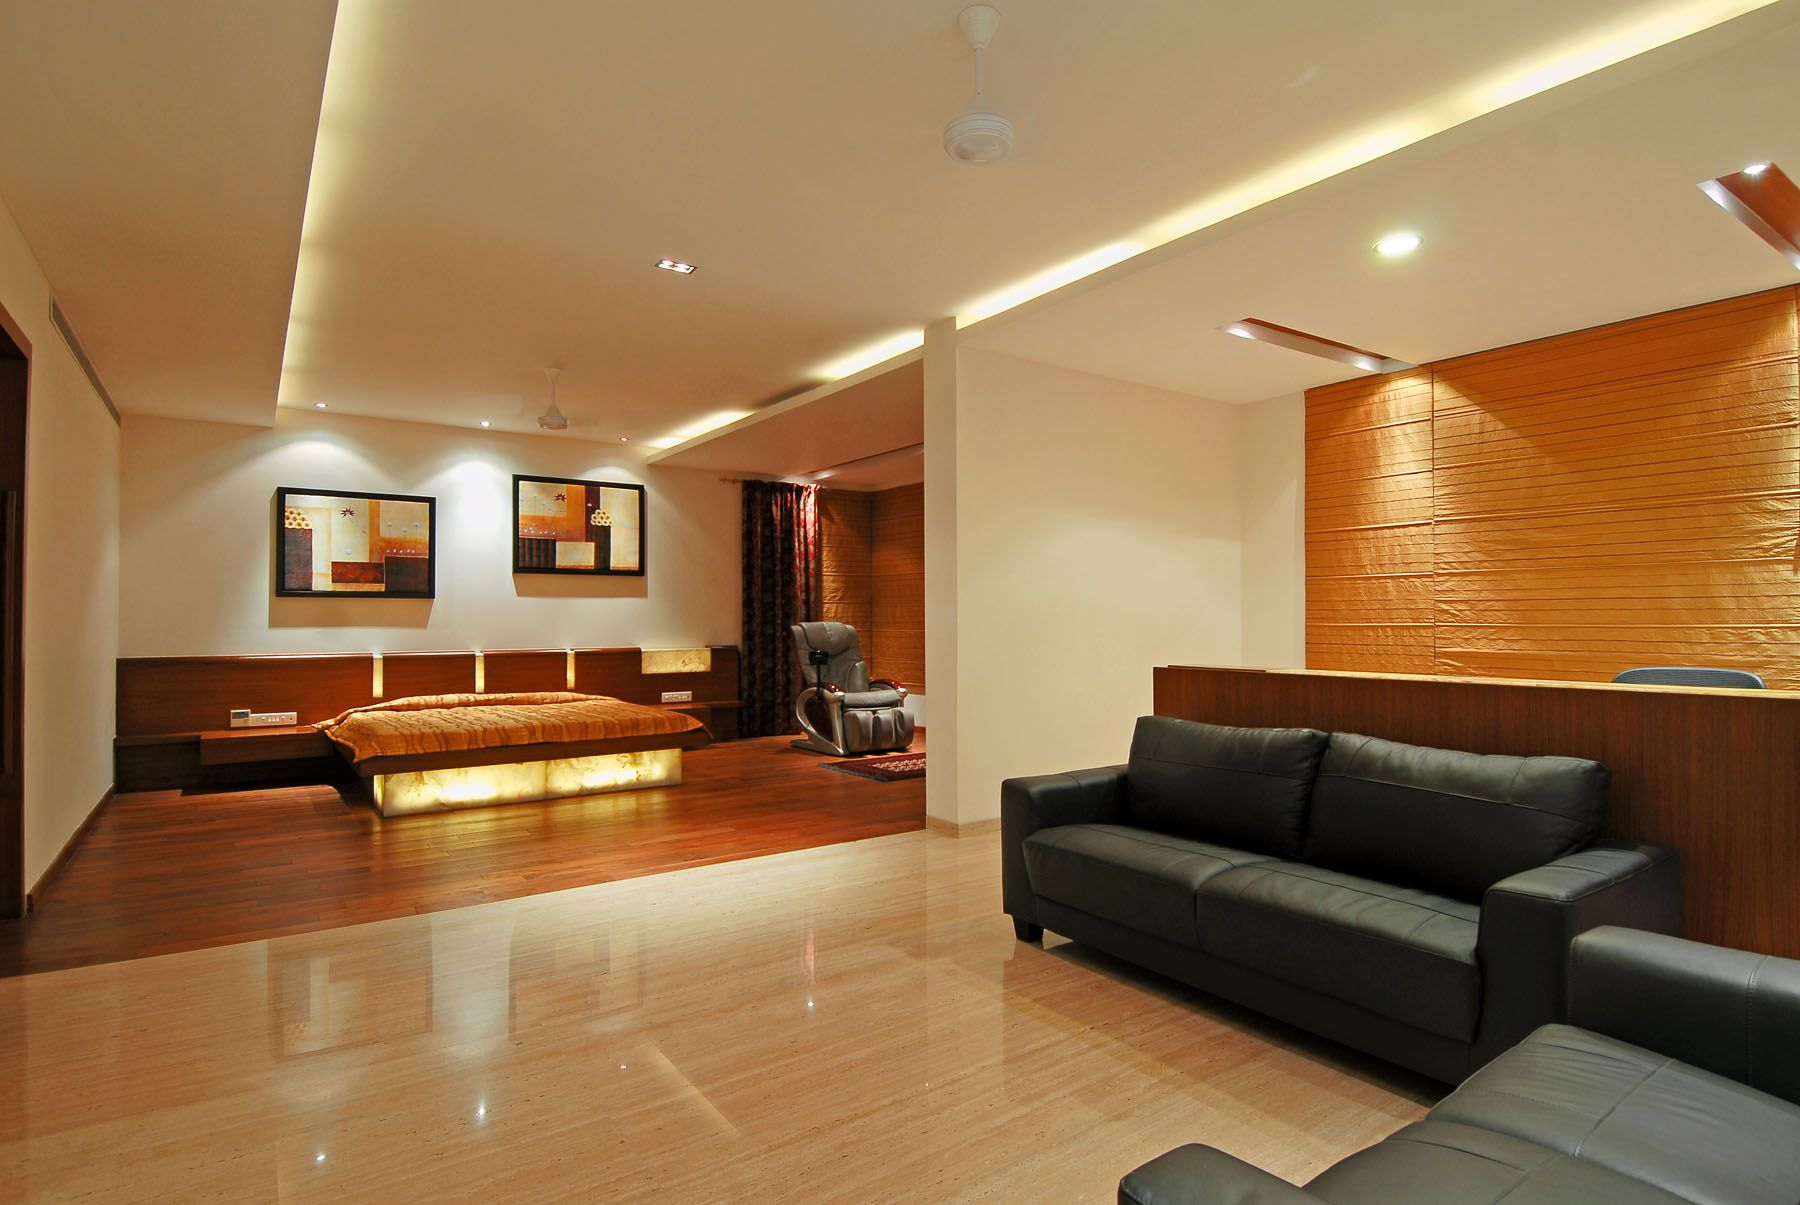 Fabulous Duplex Interior Design in Bangalore HOME DESIGN ADVISOR